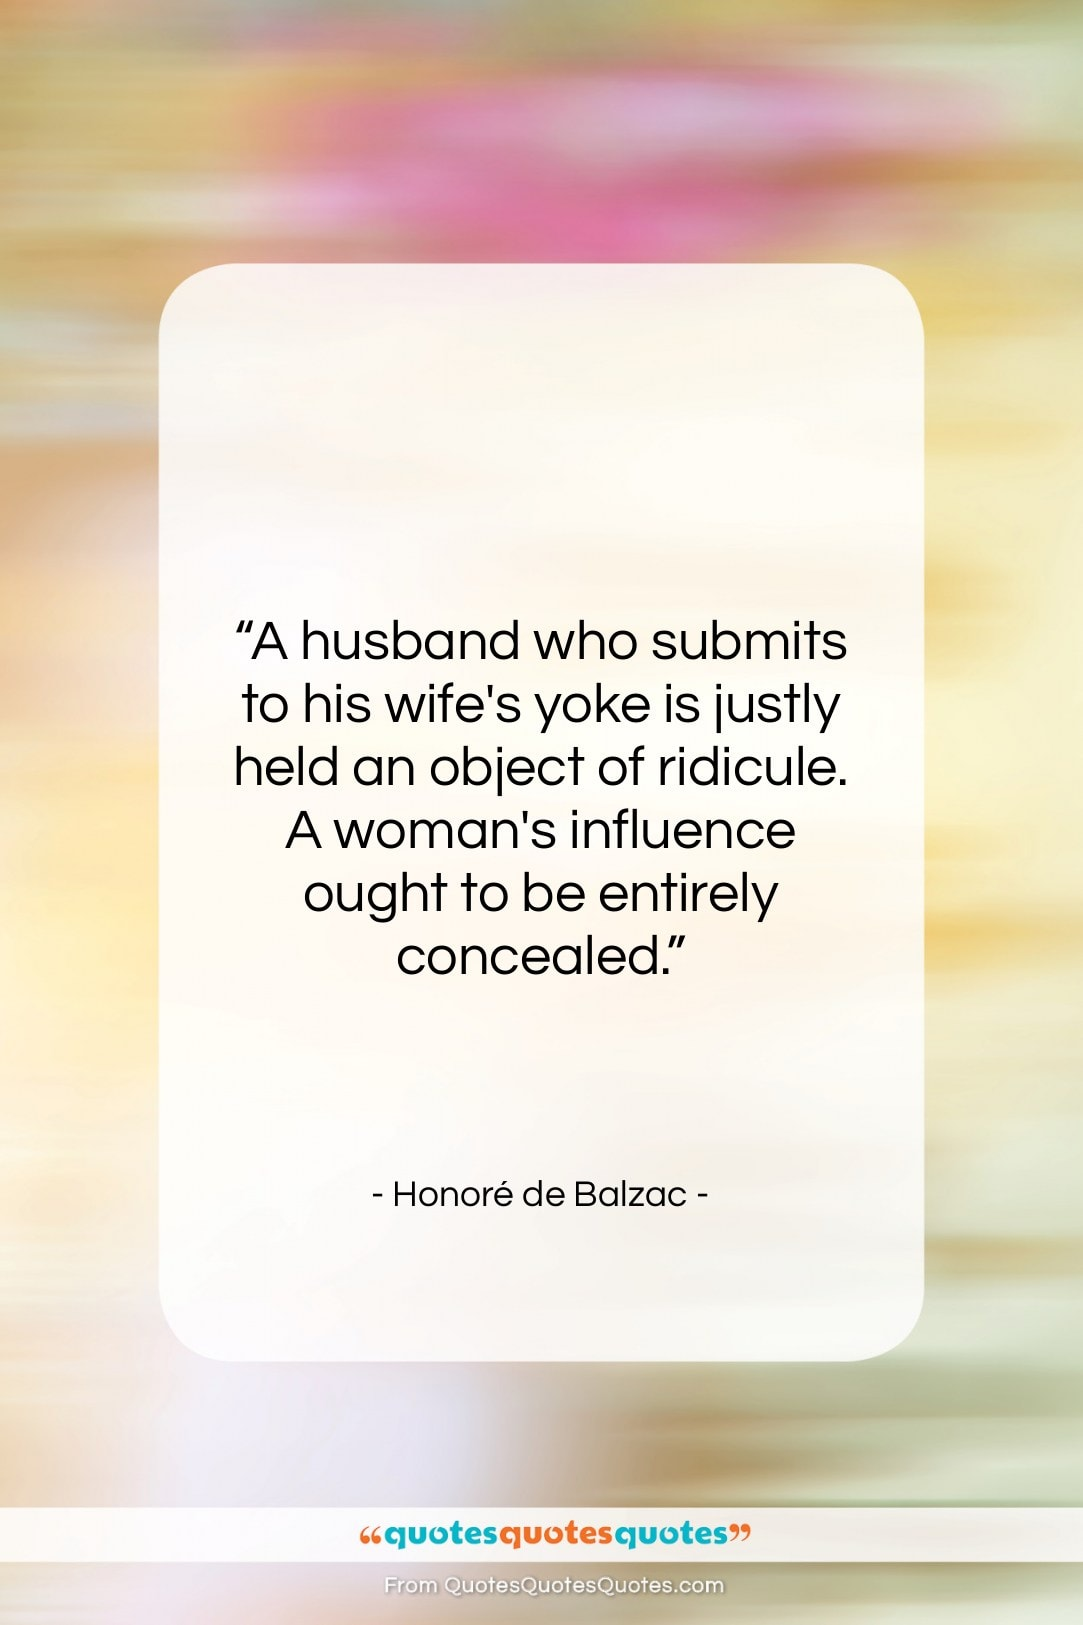 """Honoré de Balzac quote: """"A husband who submits to his wife's…""""- at QuotesQuotesQuotes.com"""